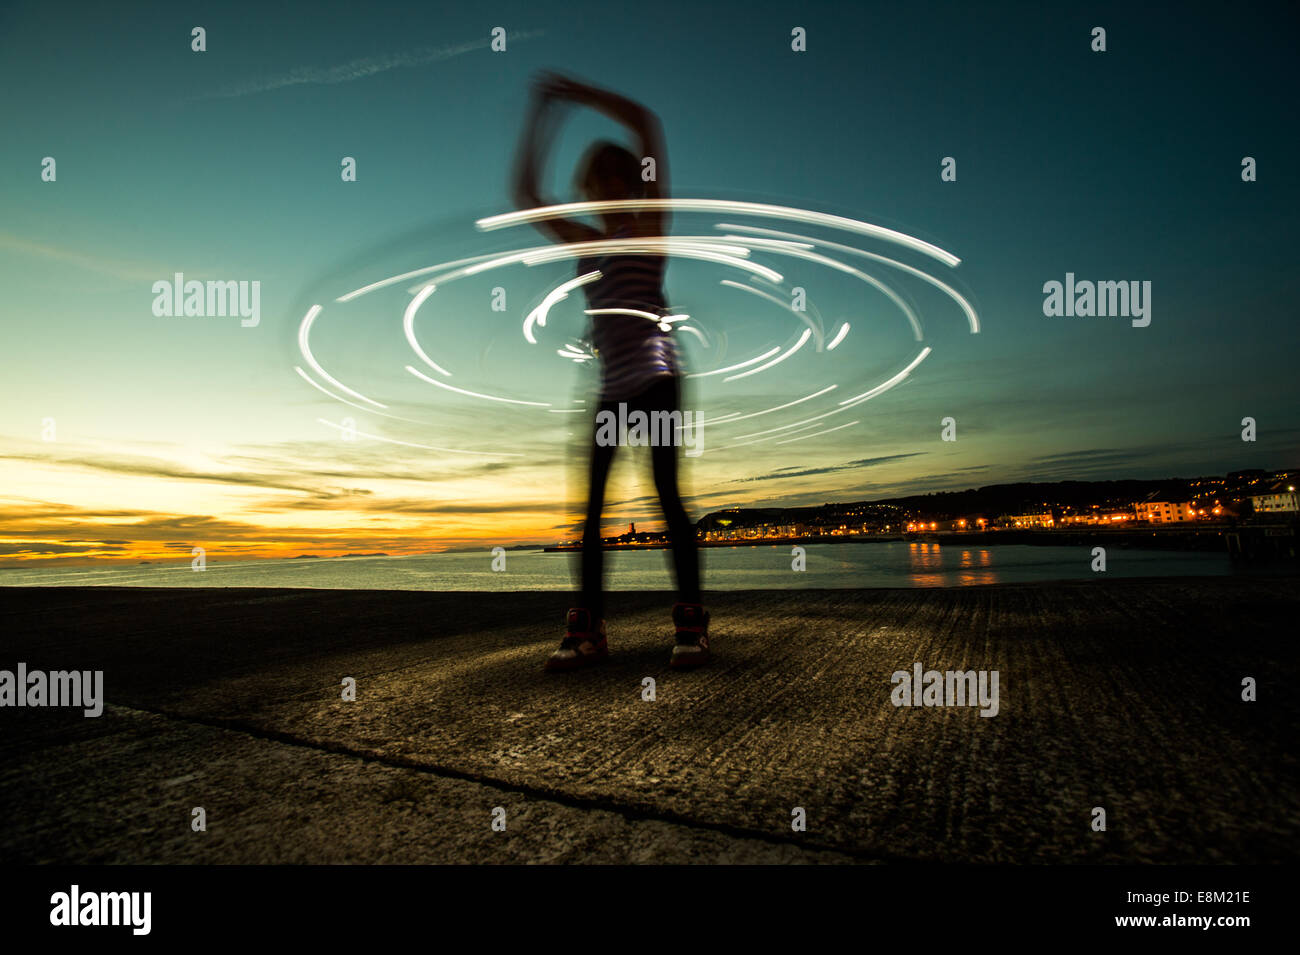 A woman in silhouette hula hooping with an illuminated hula hoop at dusk twilight - long exposure light trails circles - Stock Image